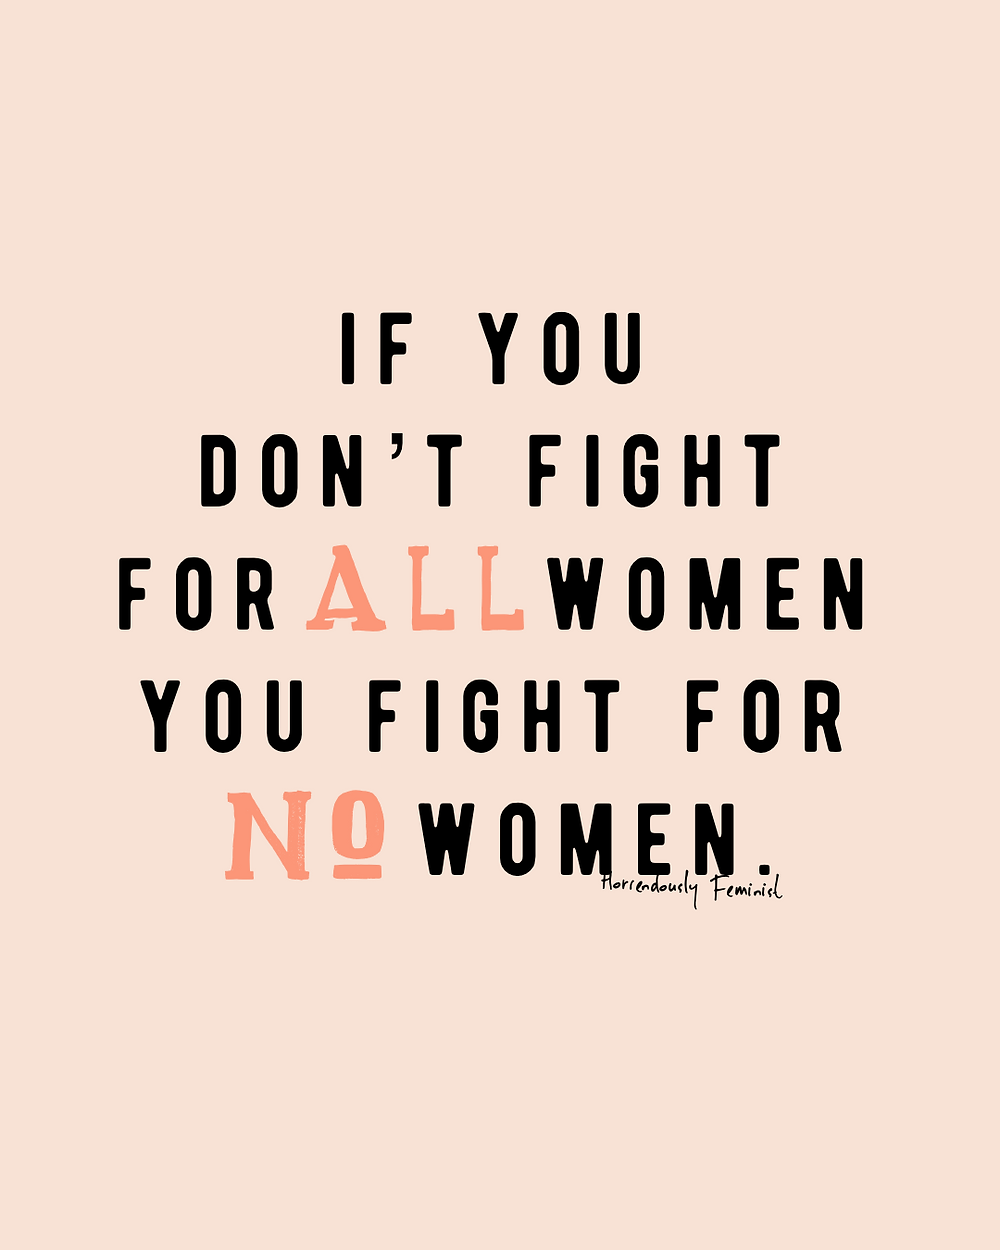 Intersectional feminism quote by Horrendously Feminist about diversity and whitewashing, if you don't fight for all women, you fight for no women